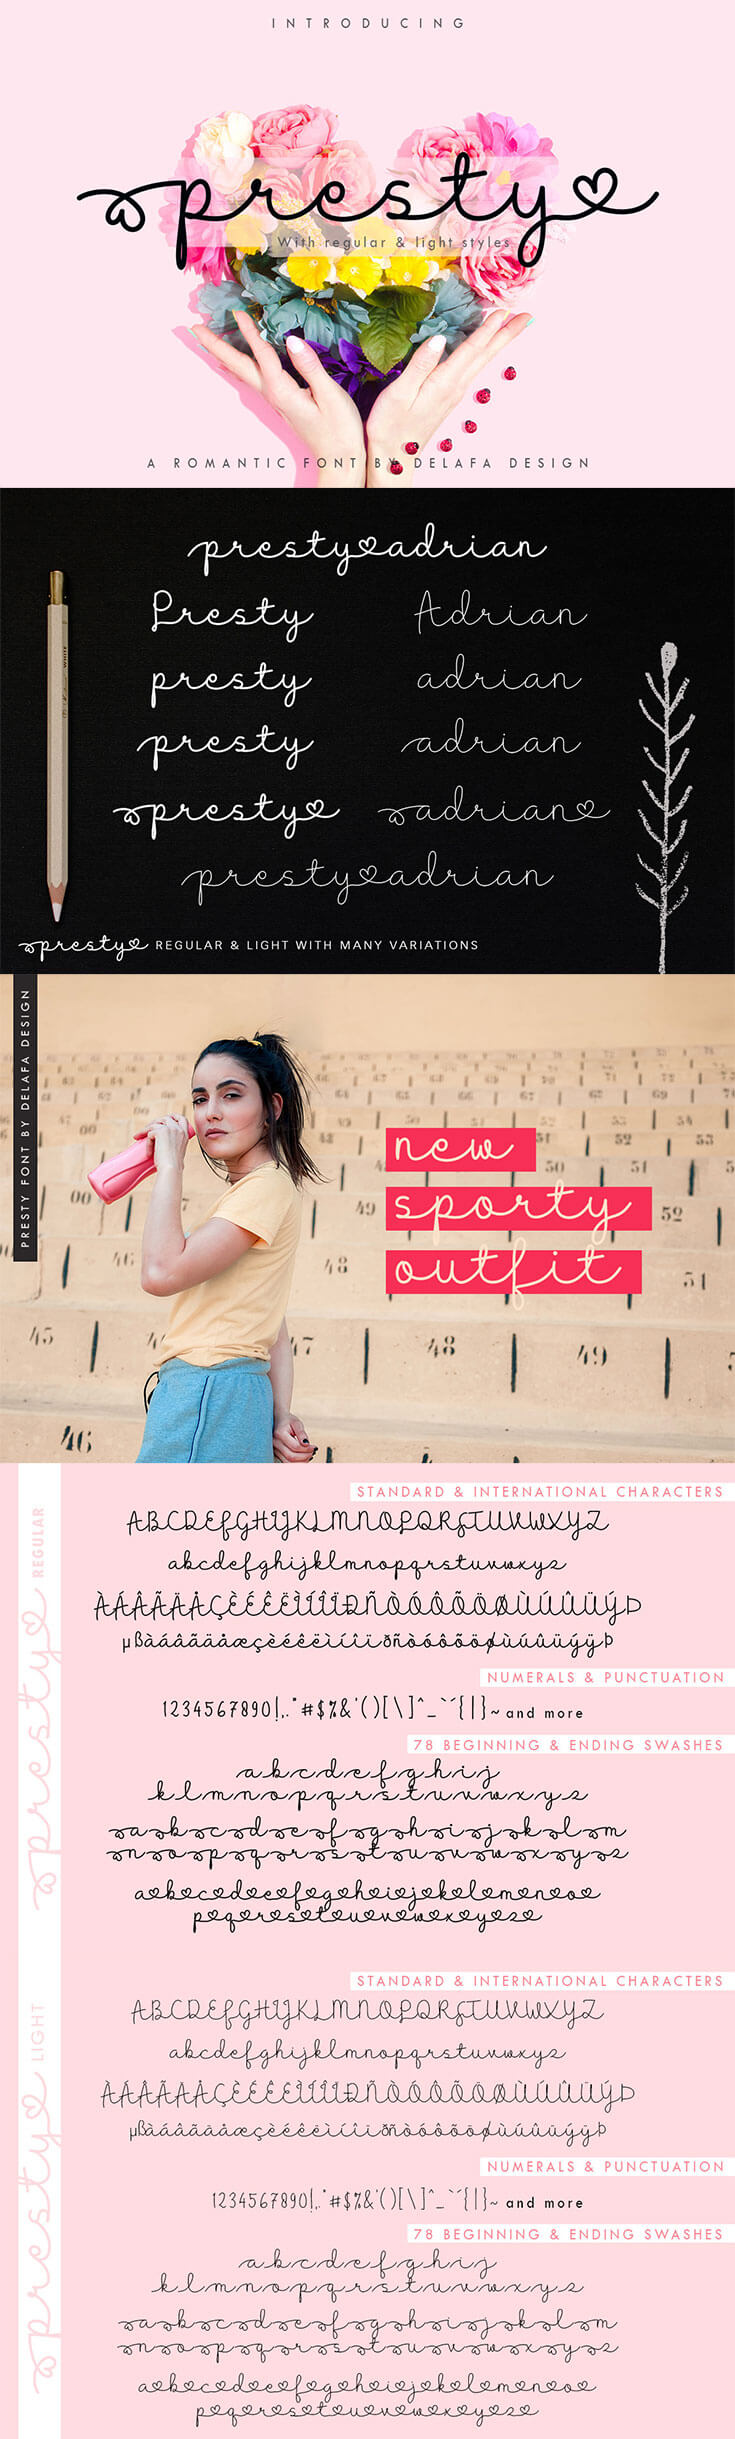 Free Presty Script Fontis a #romantic, #handmade #font that every single letters have been carefully crafted to make your text looks beautiful. Presty comes in two styles, regular and light! You can use this font for branding, wedding, letter, invitation, magazines, handwritten quote, etc.